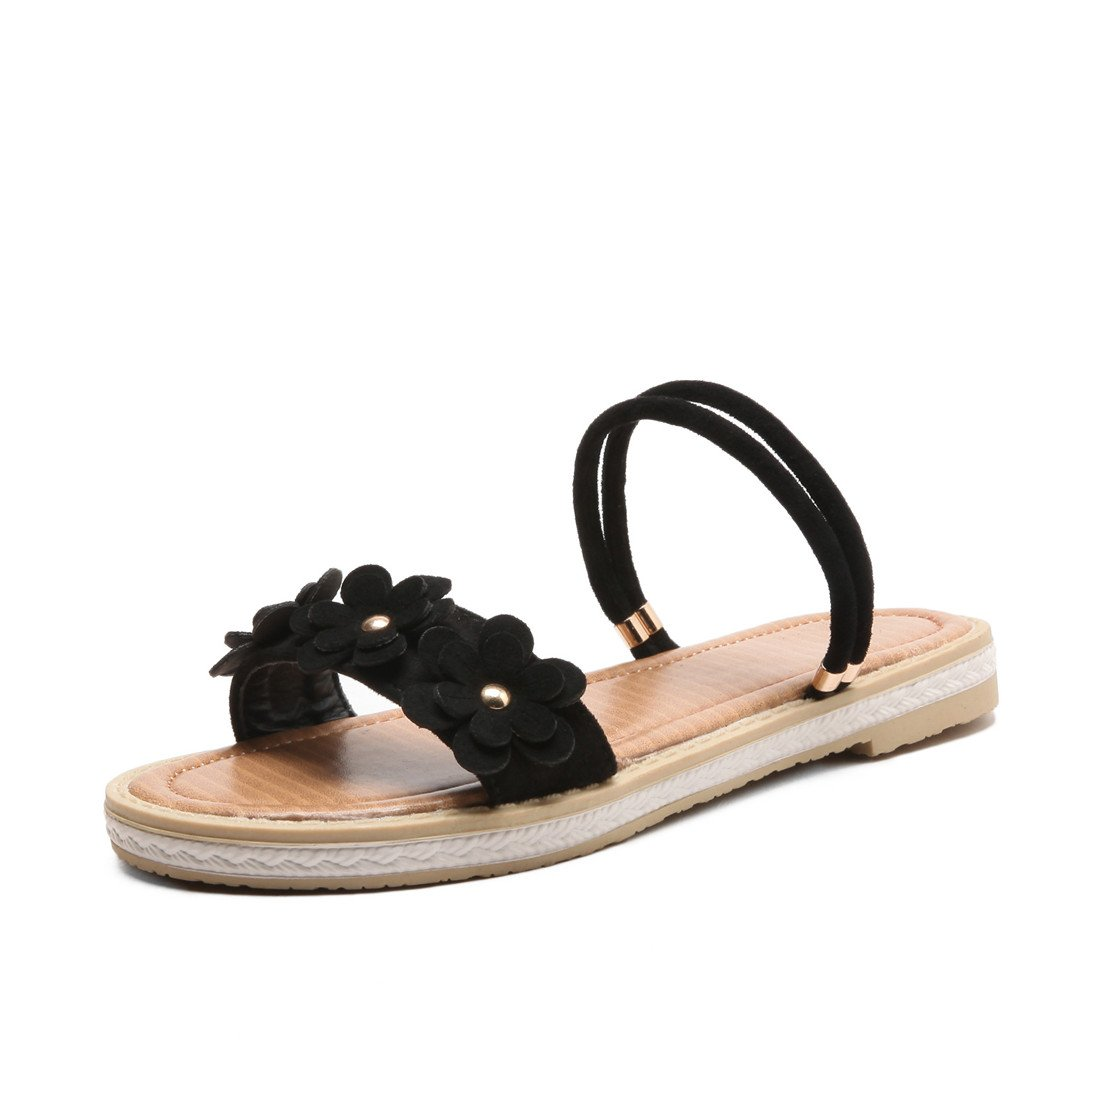 Women's Fashion Summer Sandals Personality Comfortable Slippers Flat Shoes Light Comfortable Personality Large Size 32-43,Black,34 34 Black B07CNS7K3T 57a86b